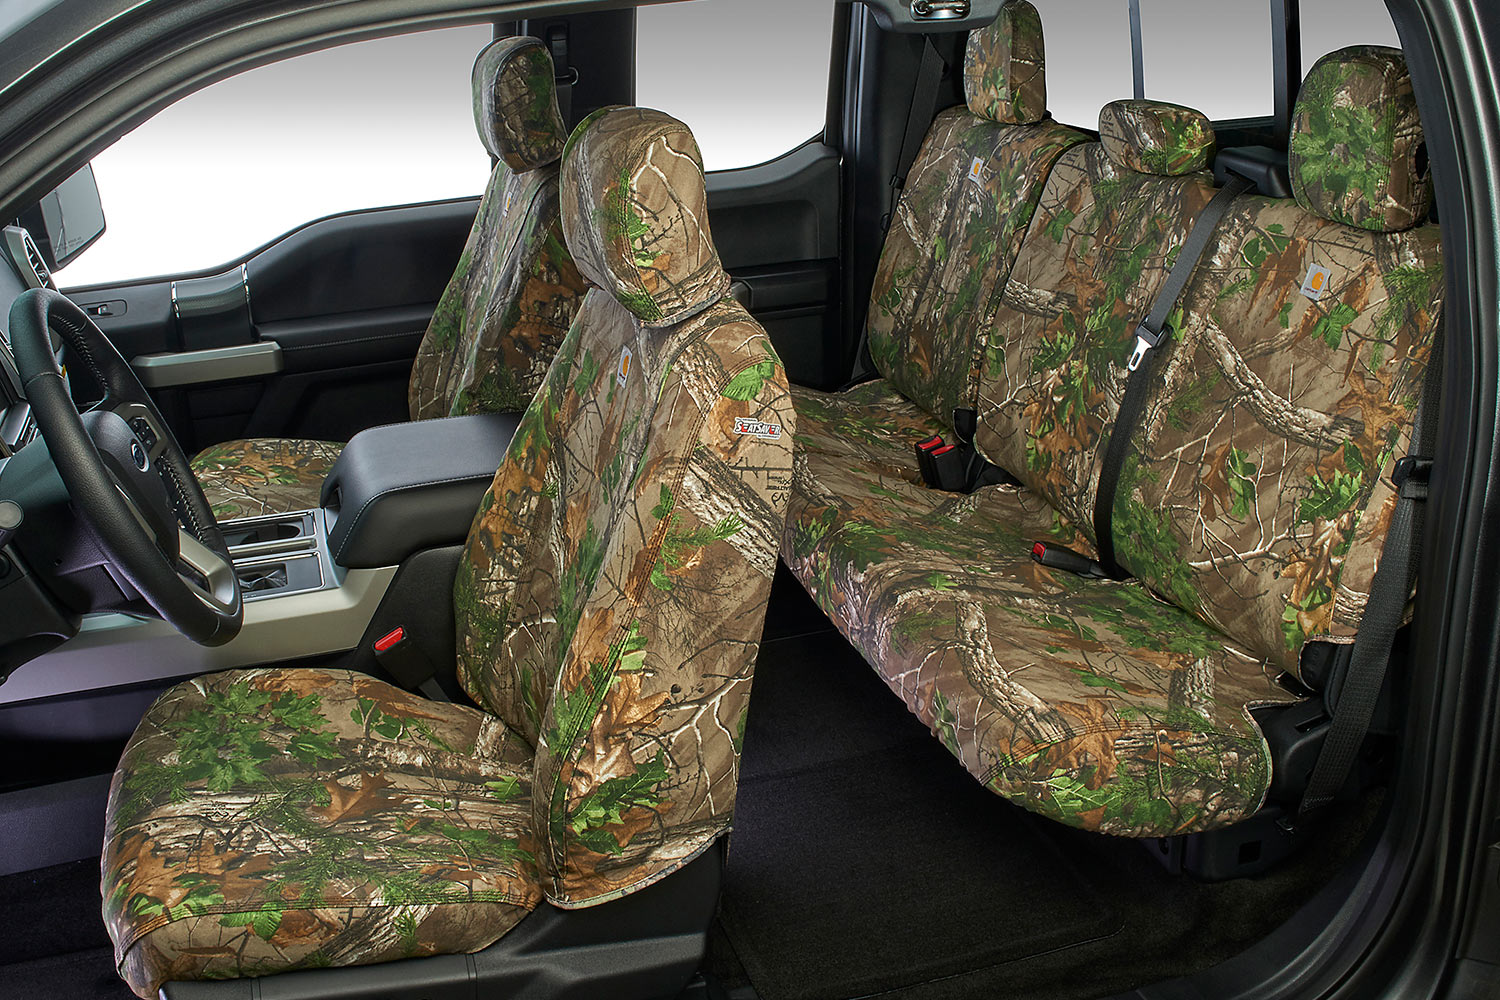 Toyota Sienna Parts >> Carhartt Realtree Camo Seat Covers - Free Shipping